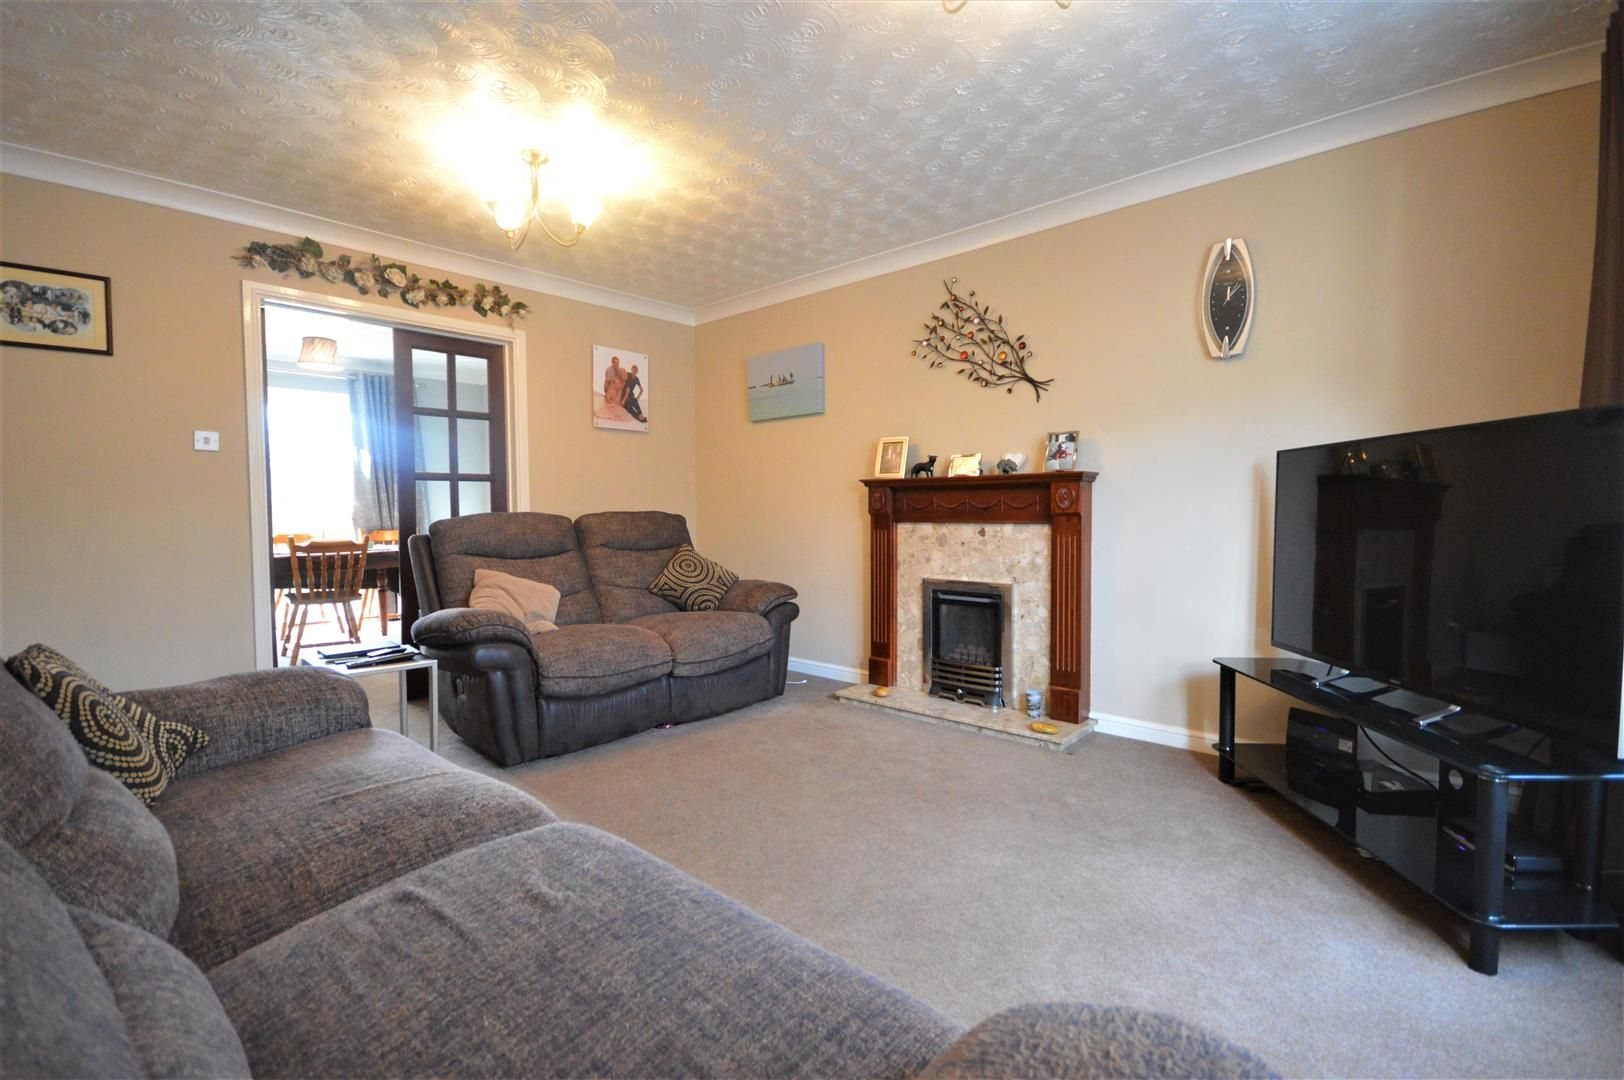 5 bed detached for sale in Leominster  - Property Image 2